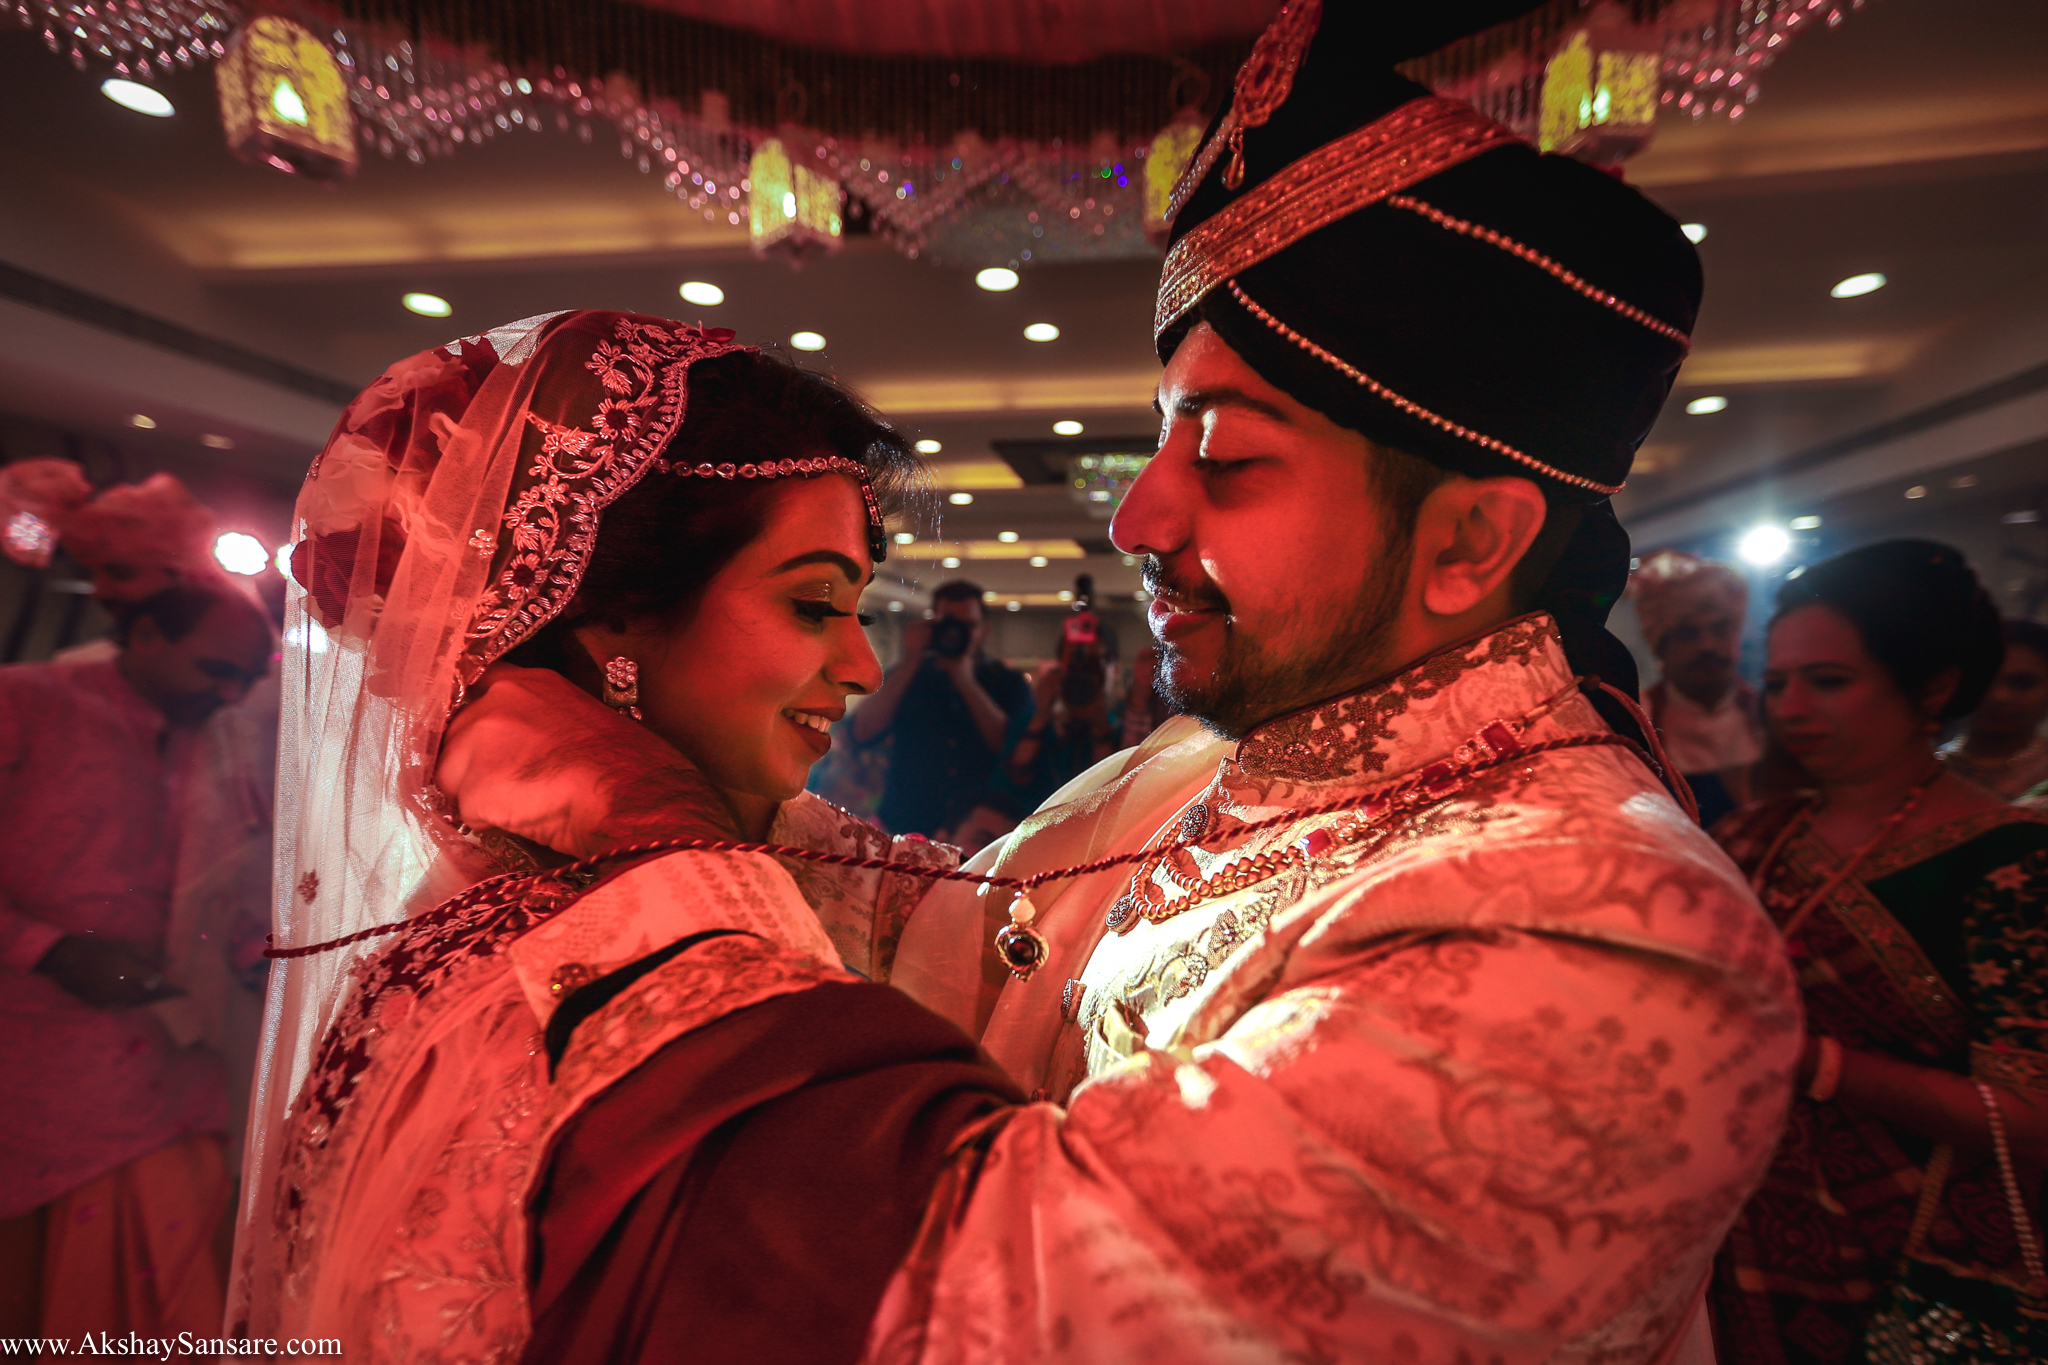 Nupur & Rohan wedding Akshay Sansare Photography best wedding photographer in mumbai India Candid(54).jpg